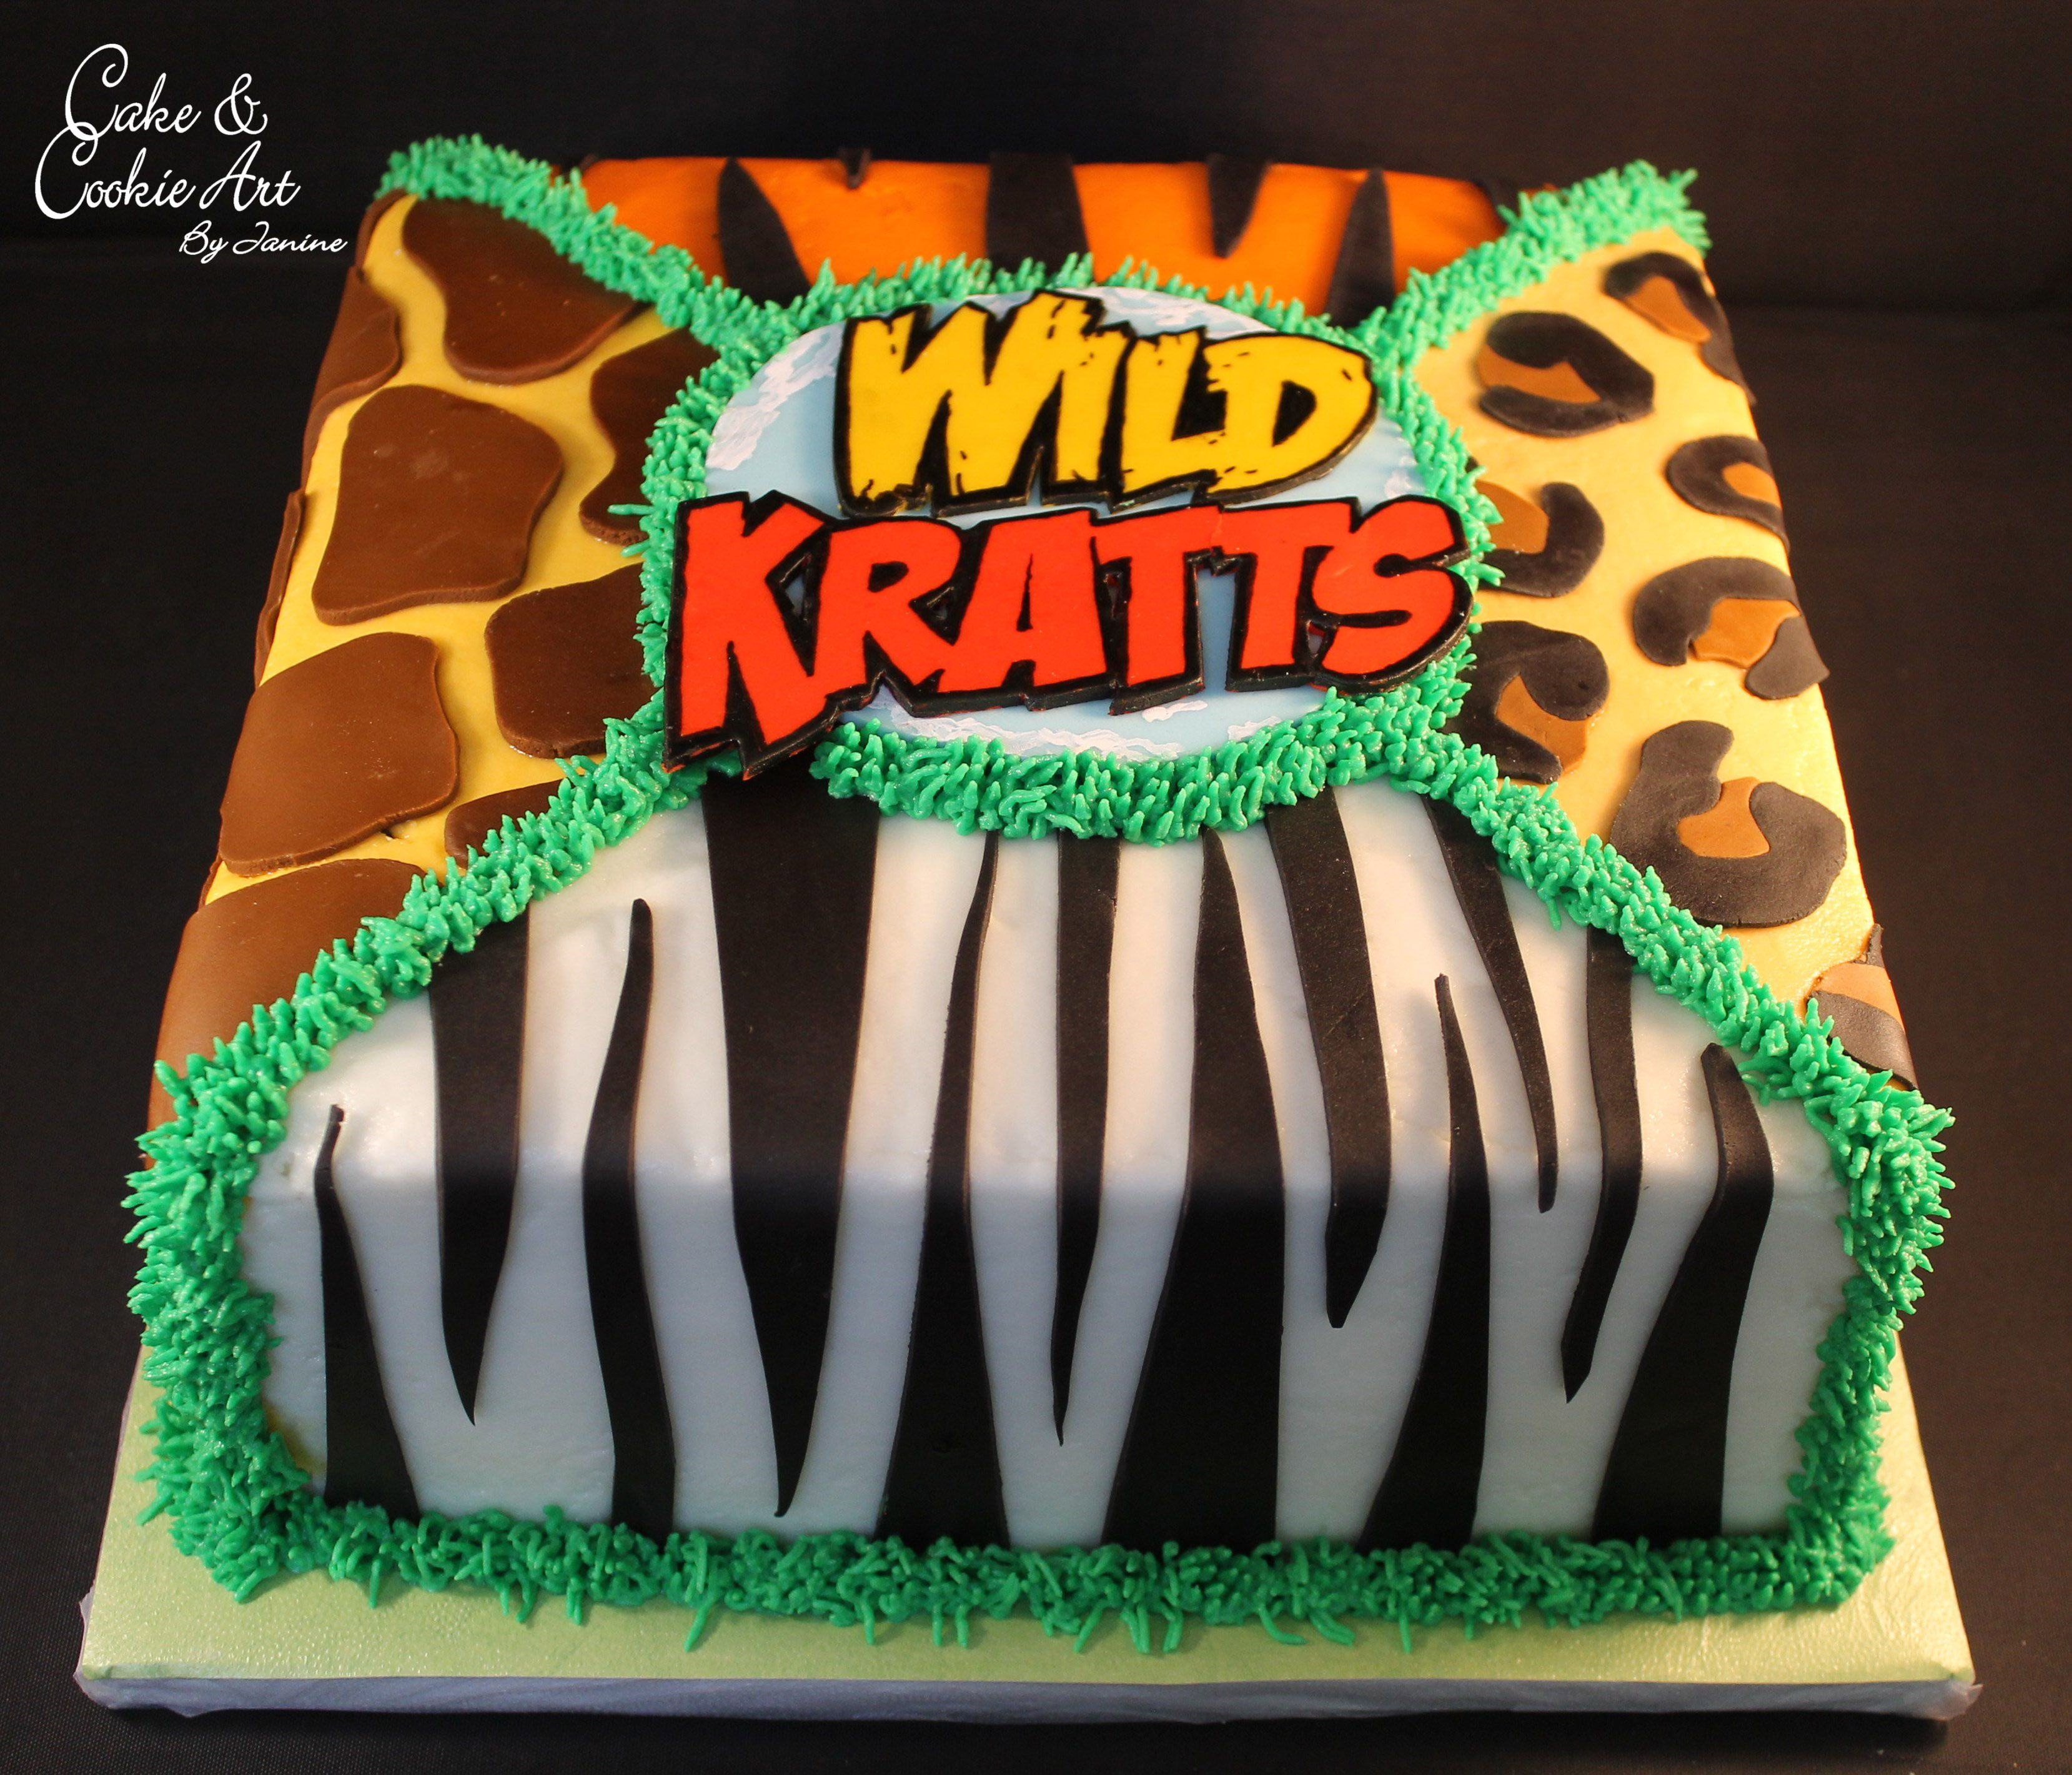 Janine S Cake Art : Wild Kratts themed cake Cakes by Cake and Cookie Art by ...